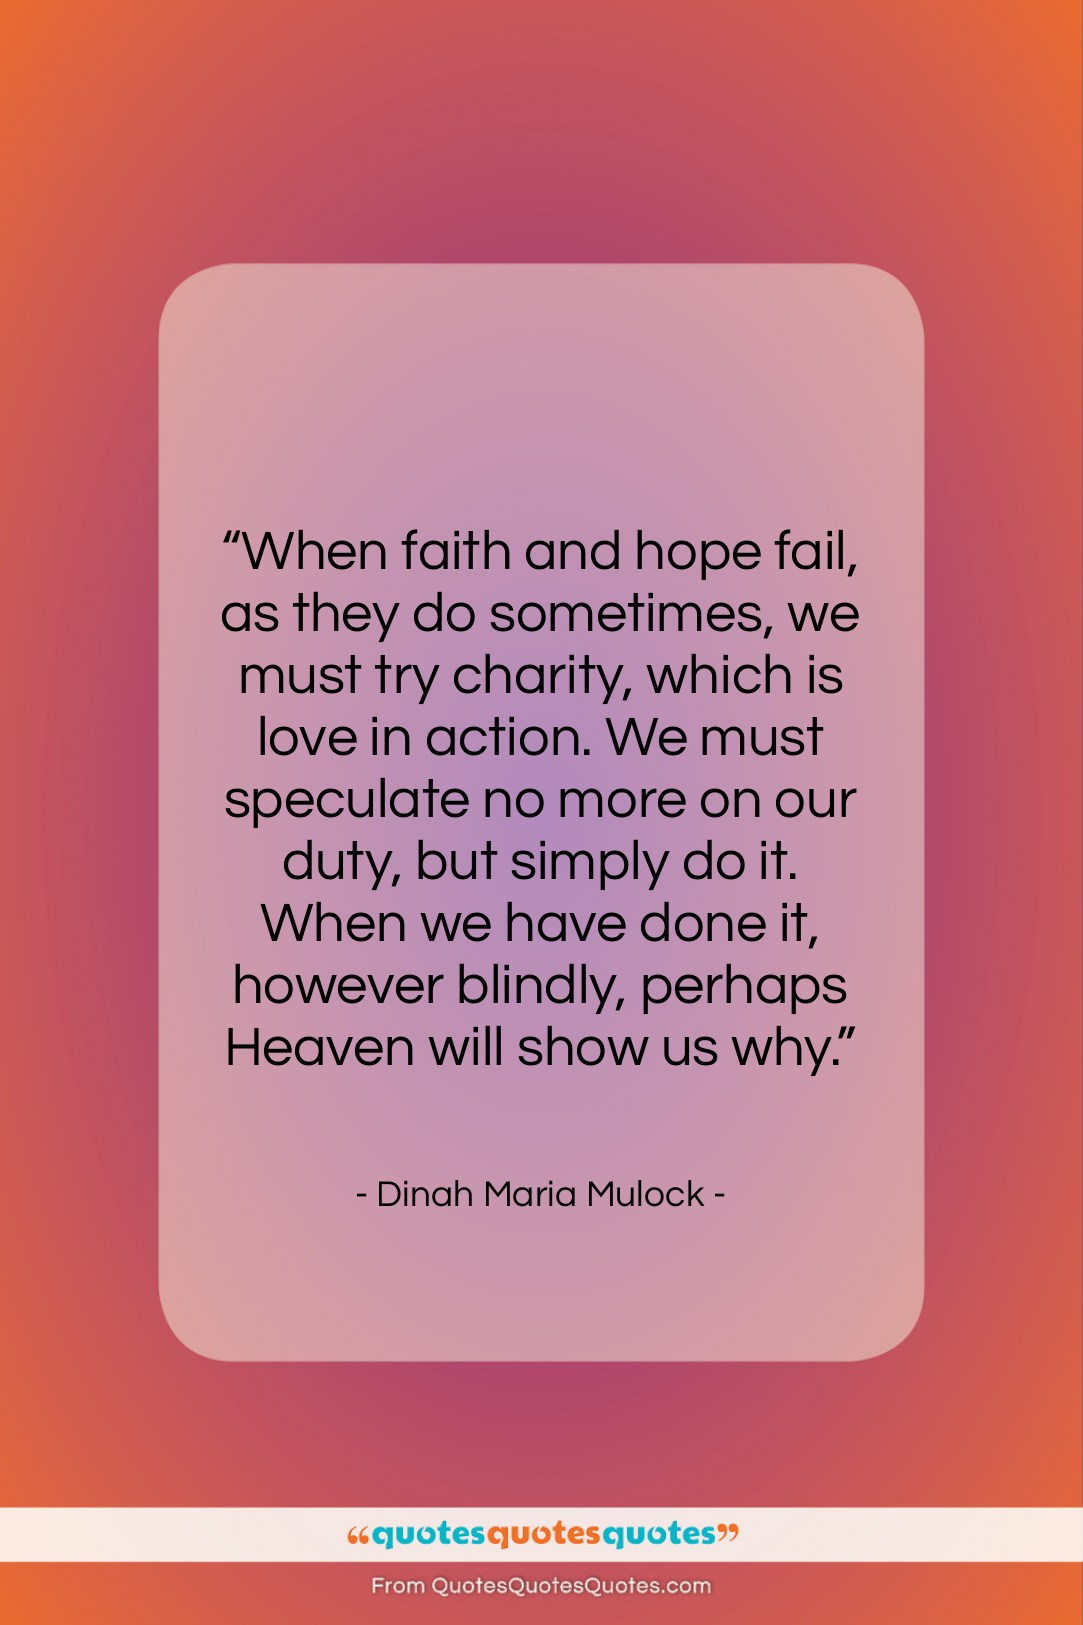 """Dinah Maria Mulock quote: """"When faith and hope fail, as they…""""- at QuotesQuotesQuotes.com"""